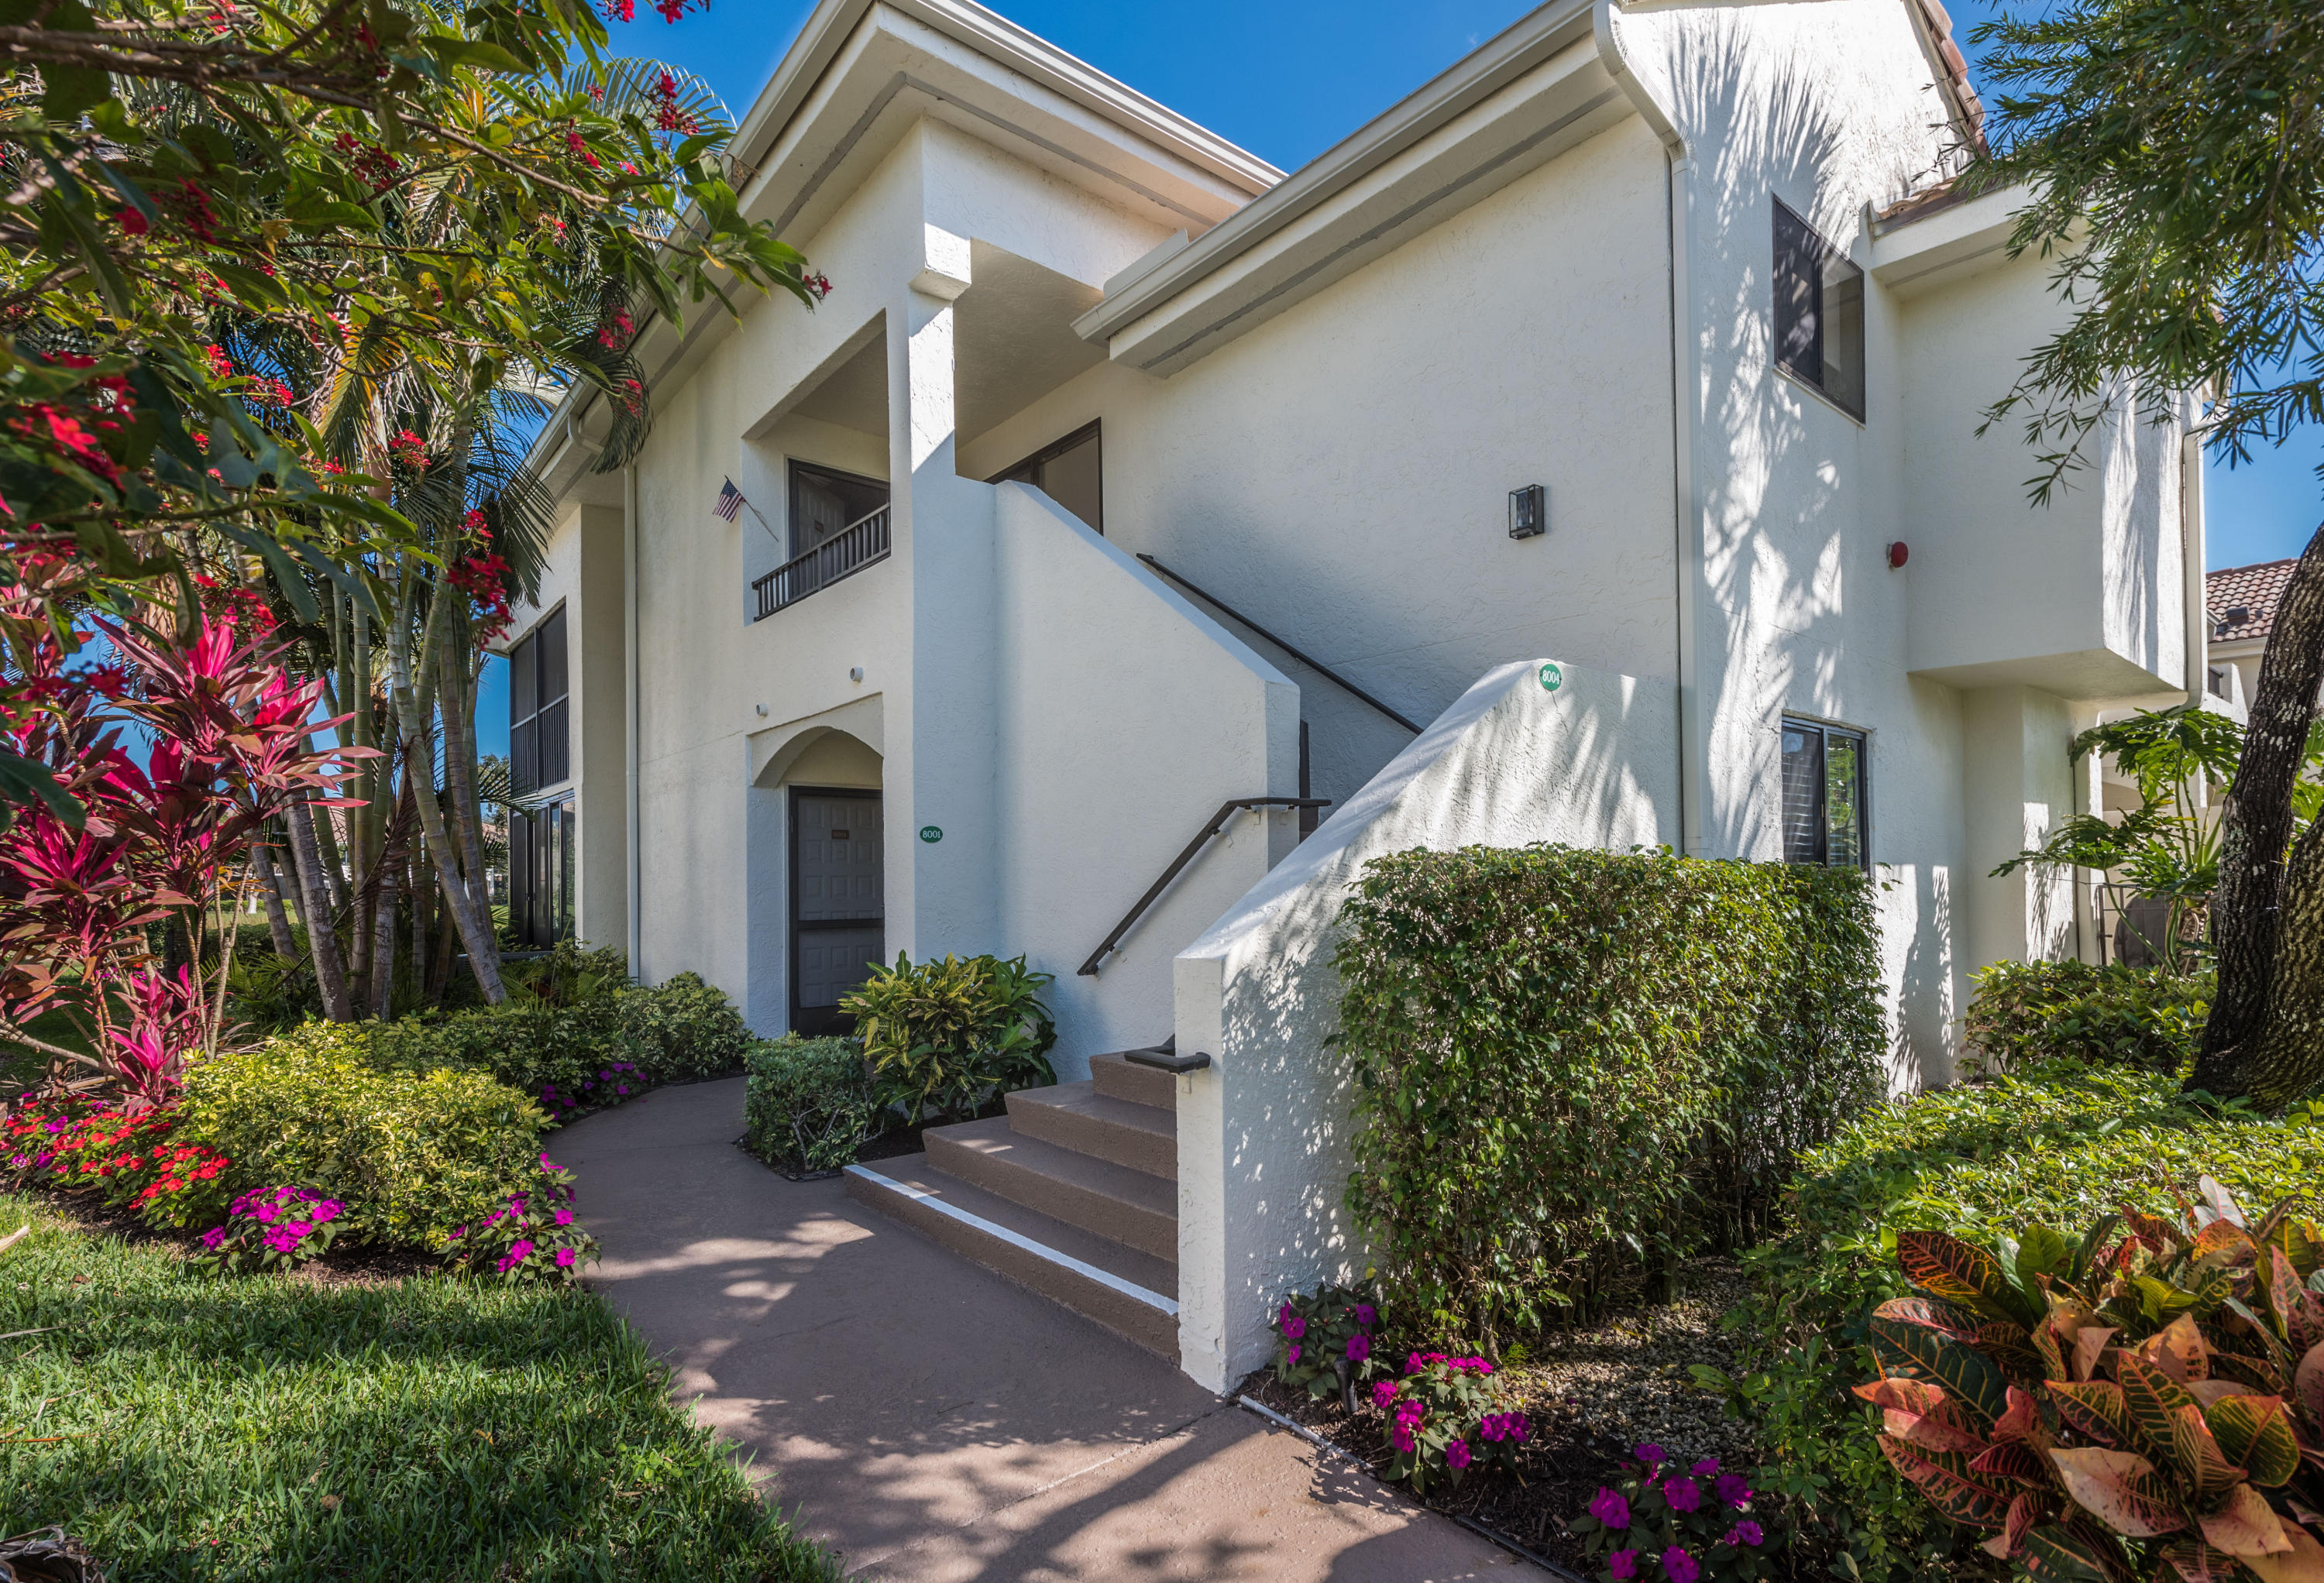 Home for sale in Geneagles Country Club Delray Beach Florida